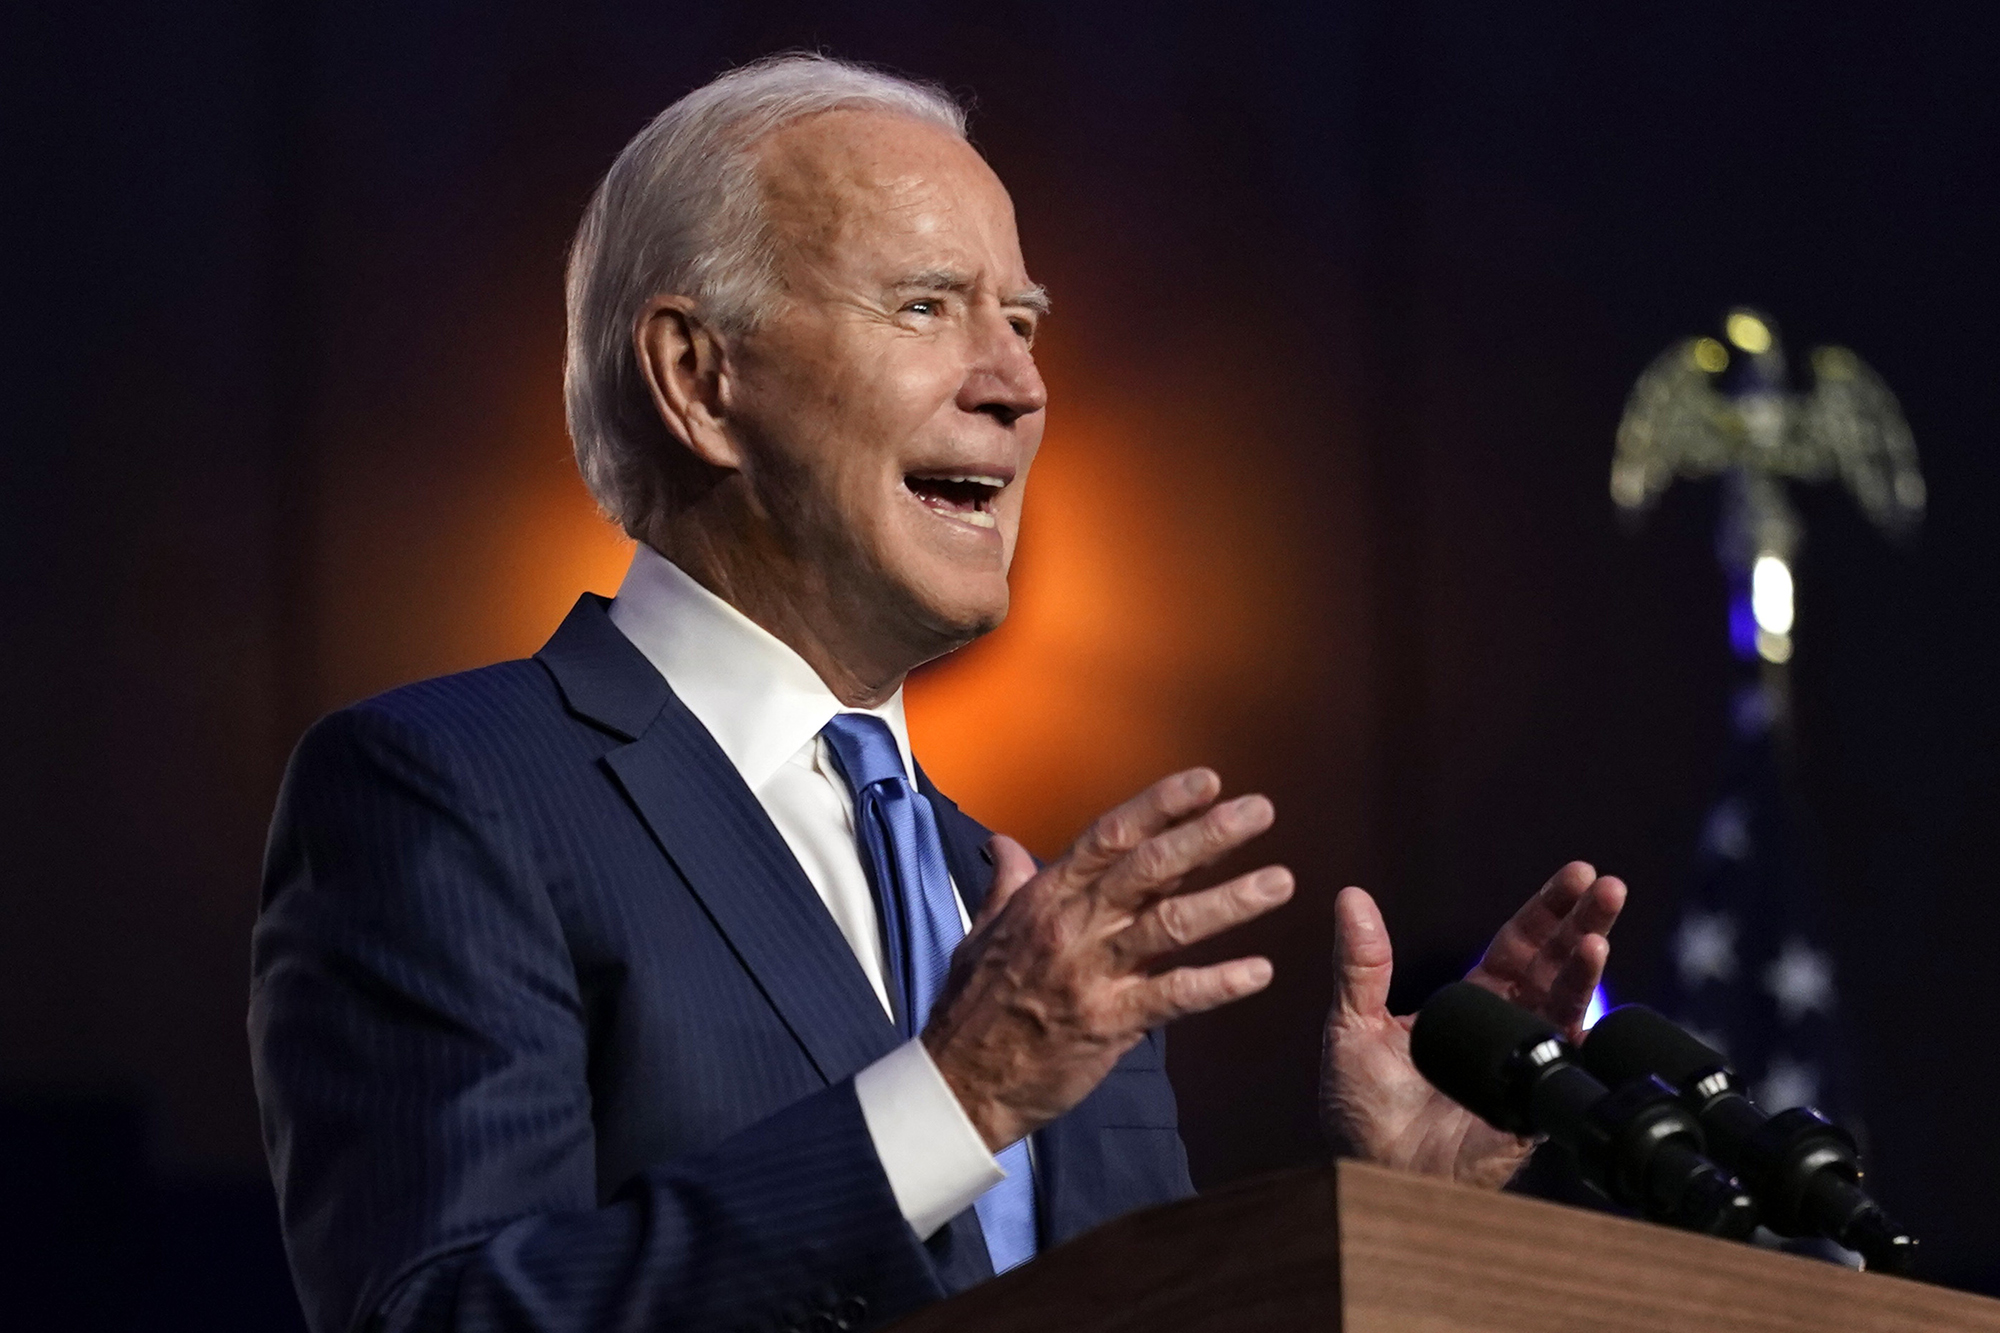 Democratic presidential candidate Joe Biden speaks on Friday in Wilmington, Delaware.